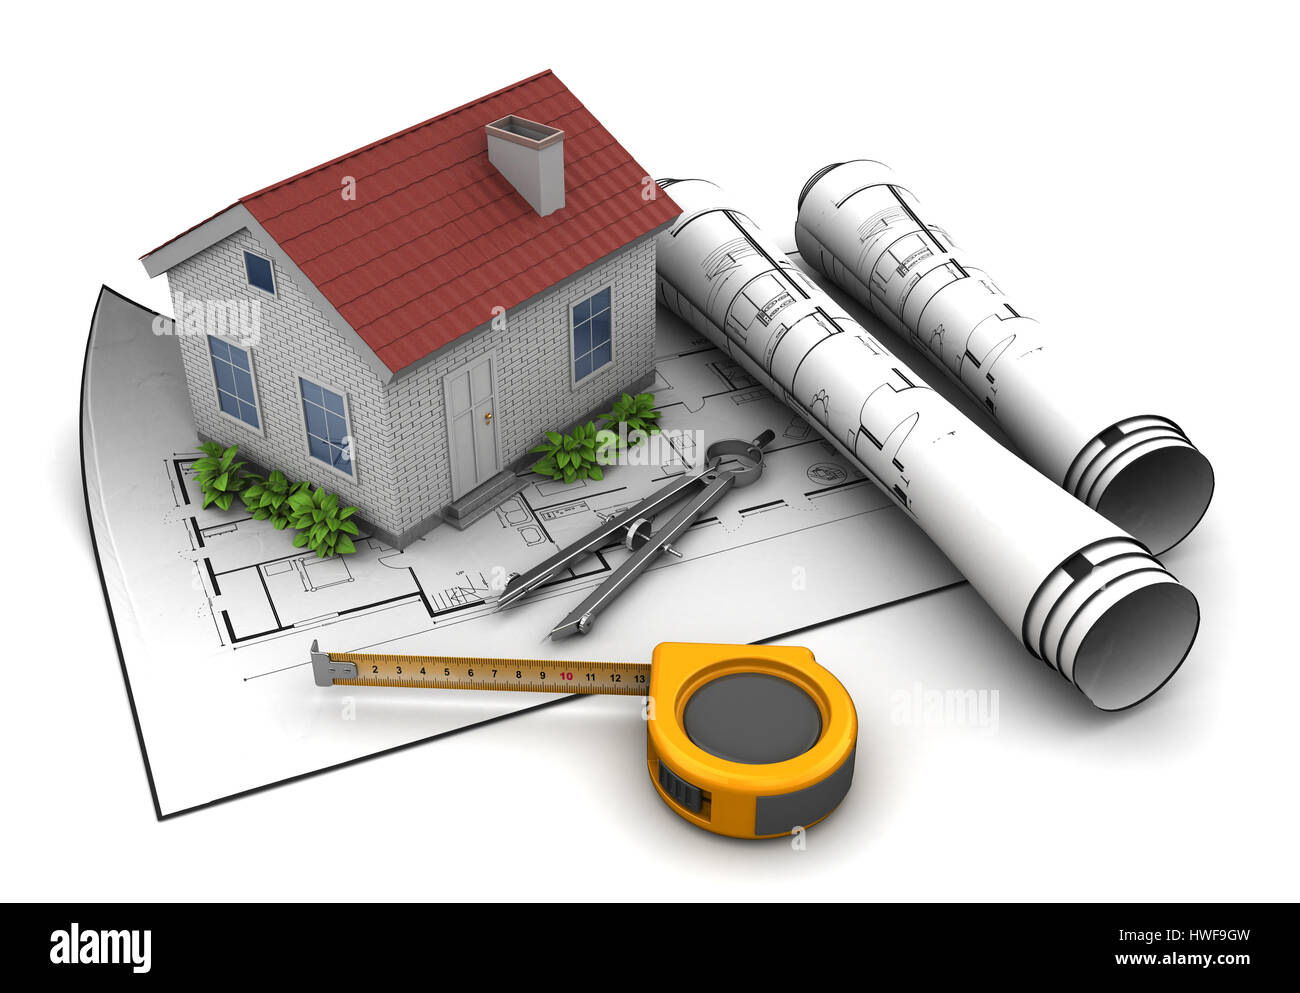 3d illustration of house model and blueprint over white background 3d illustration of house model and blueprint over white background malvernweather Choice Image